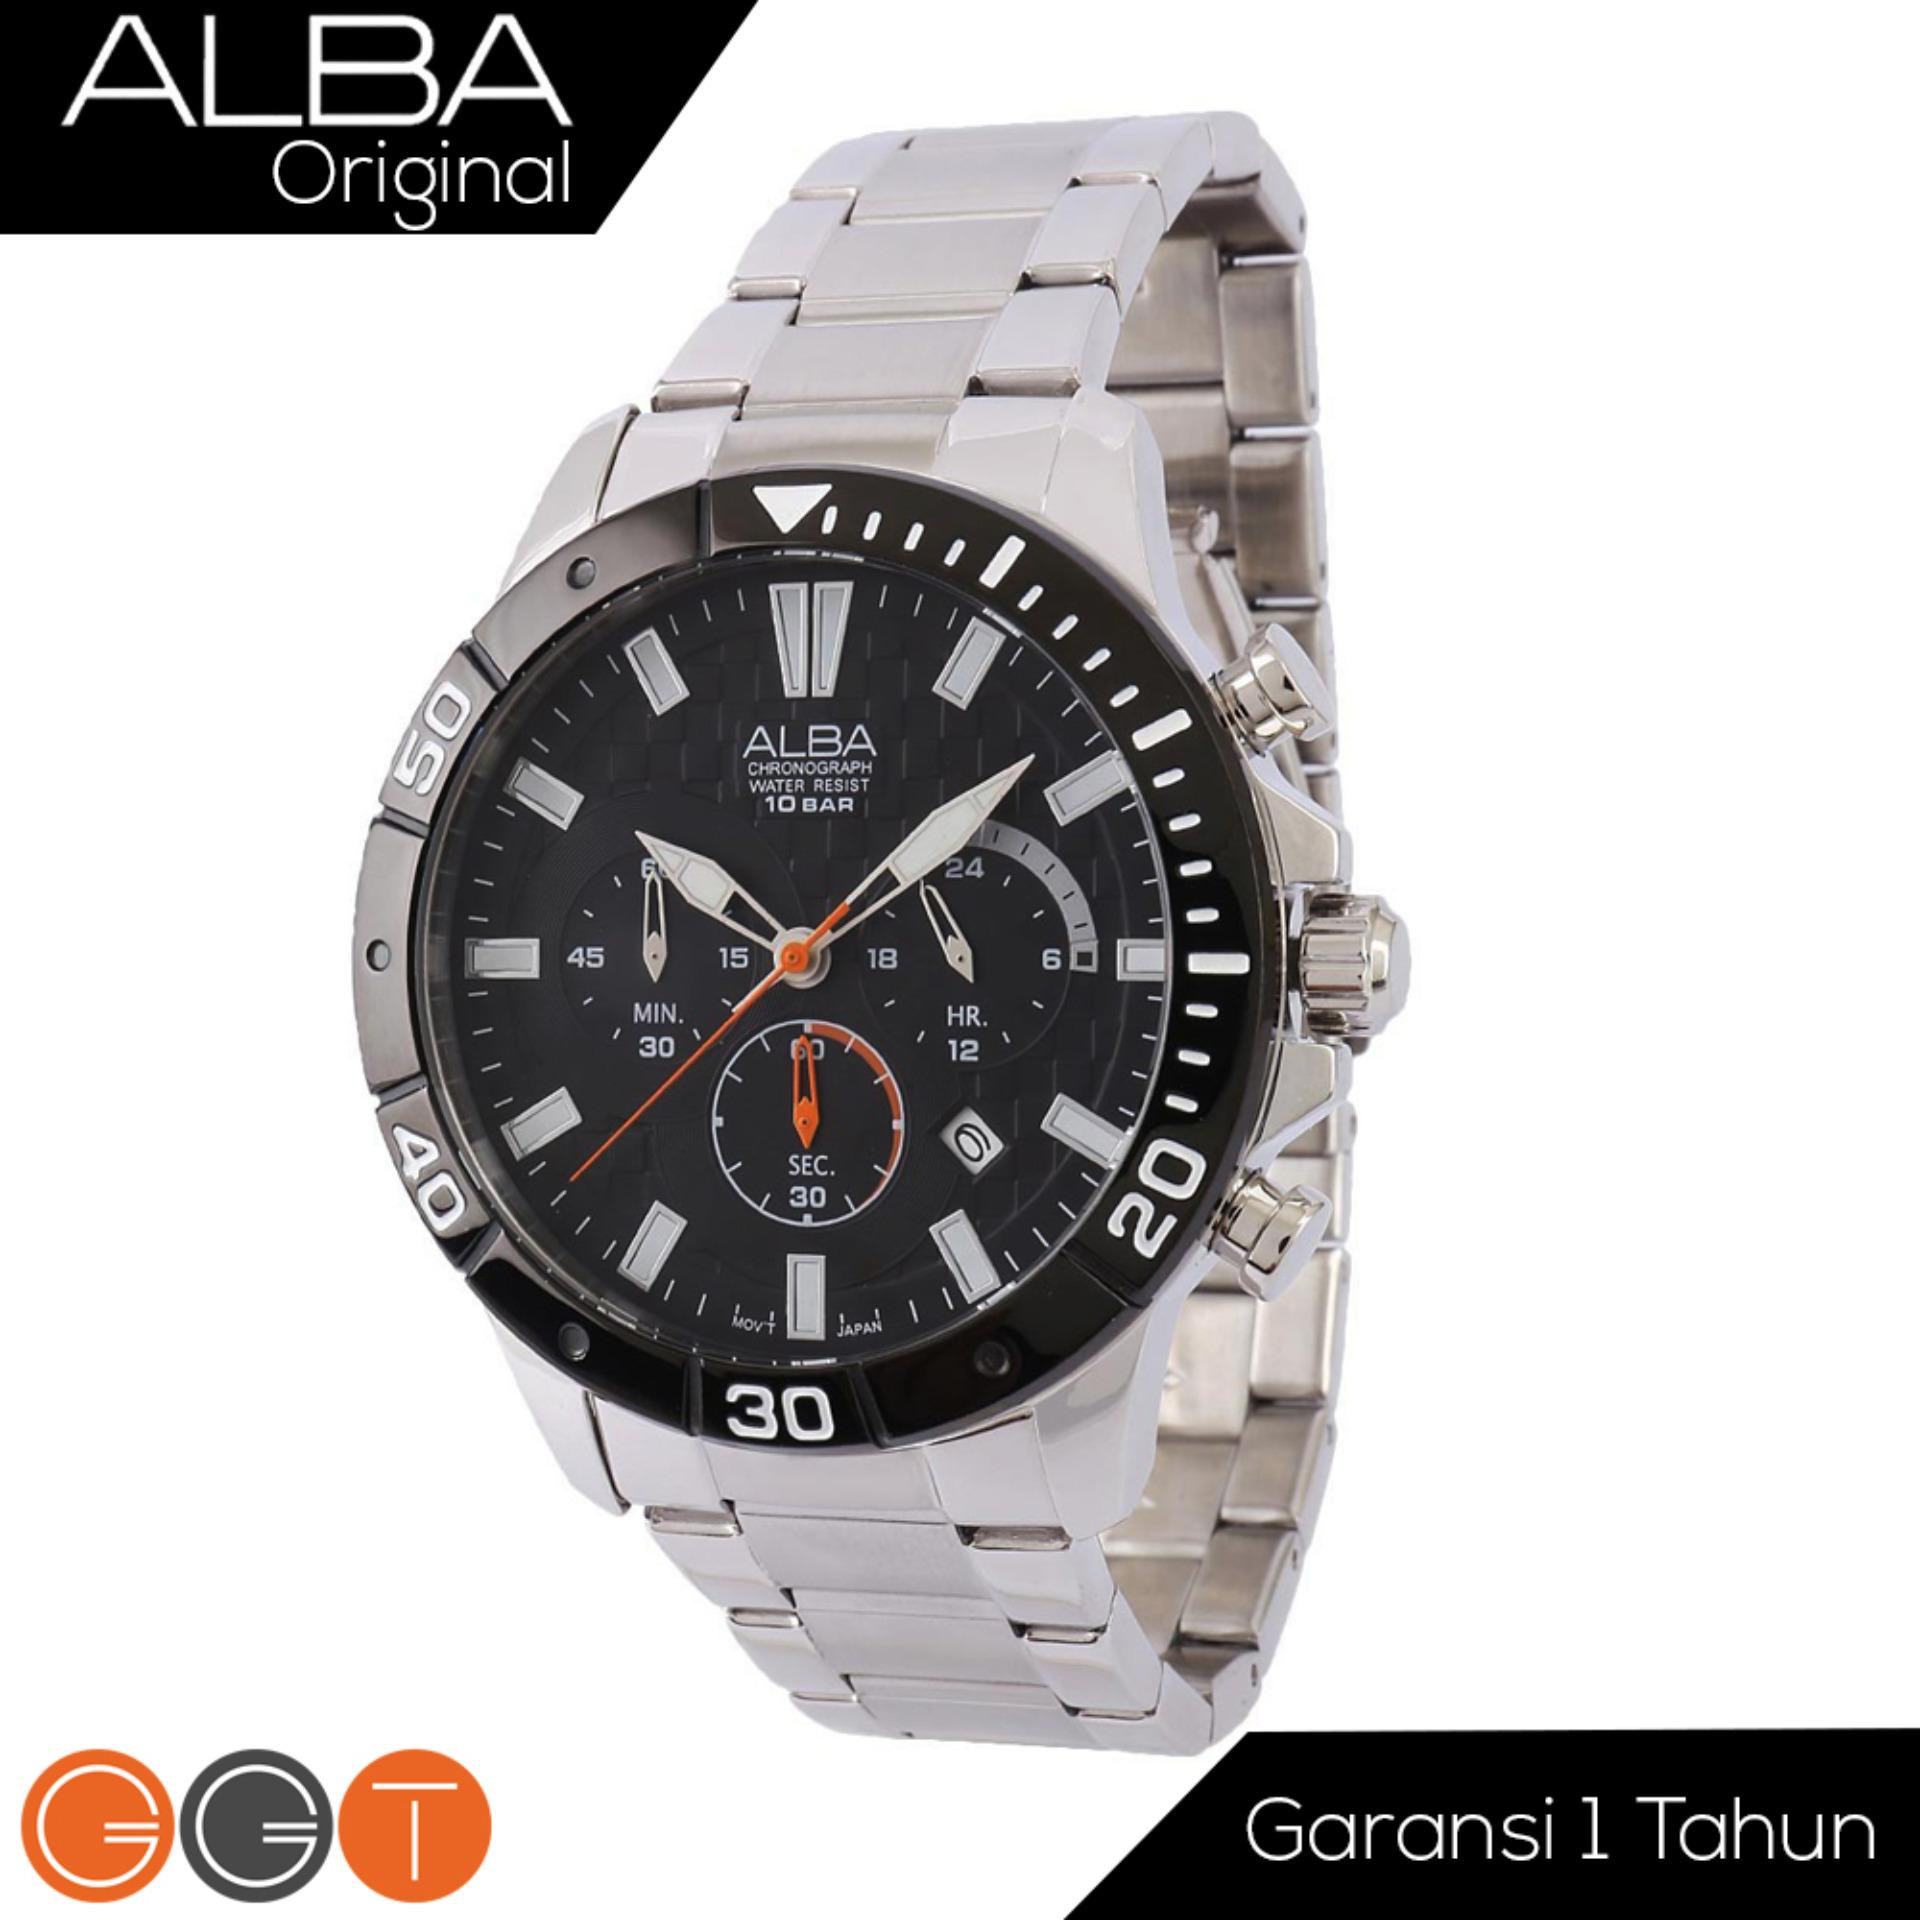 Alba Chronograph Jam Tangan - Strap Stainless Steel - AT3A07X1 - Gold White